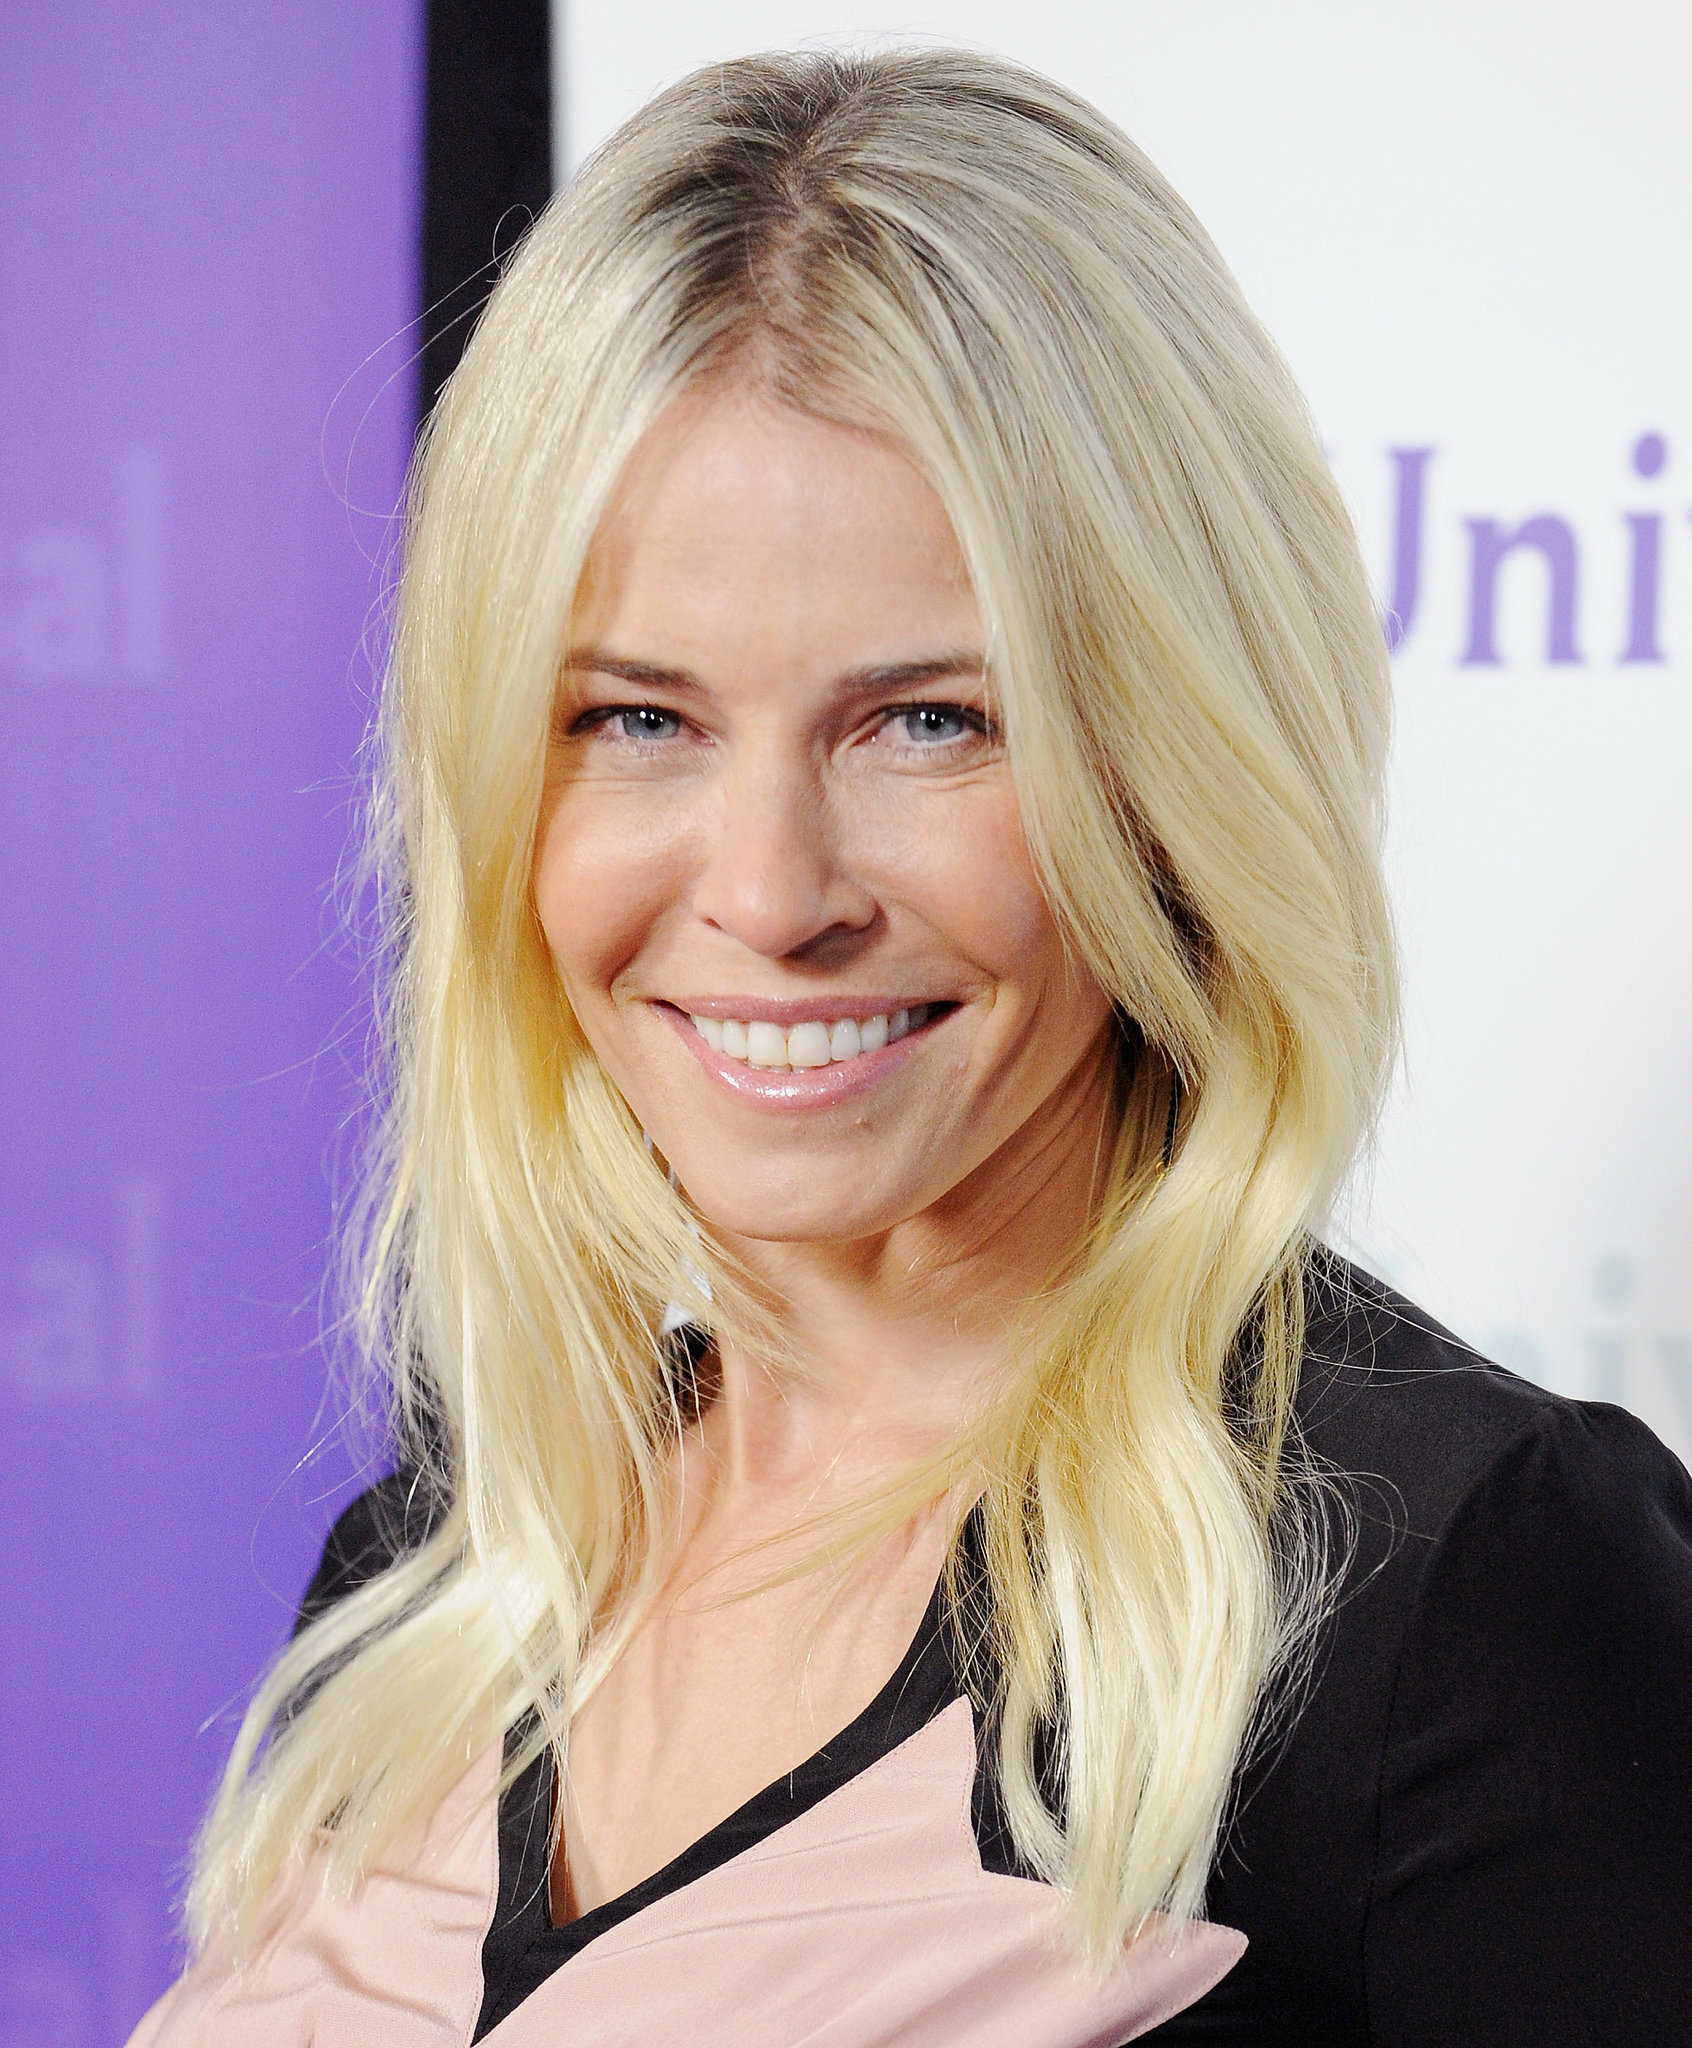 "In 2011, Chelsea Handler told The New York Times that she's had an abortion and finds it important to say so: ""I had an abortion when I was 16. Because that's what I should have done."